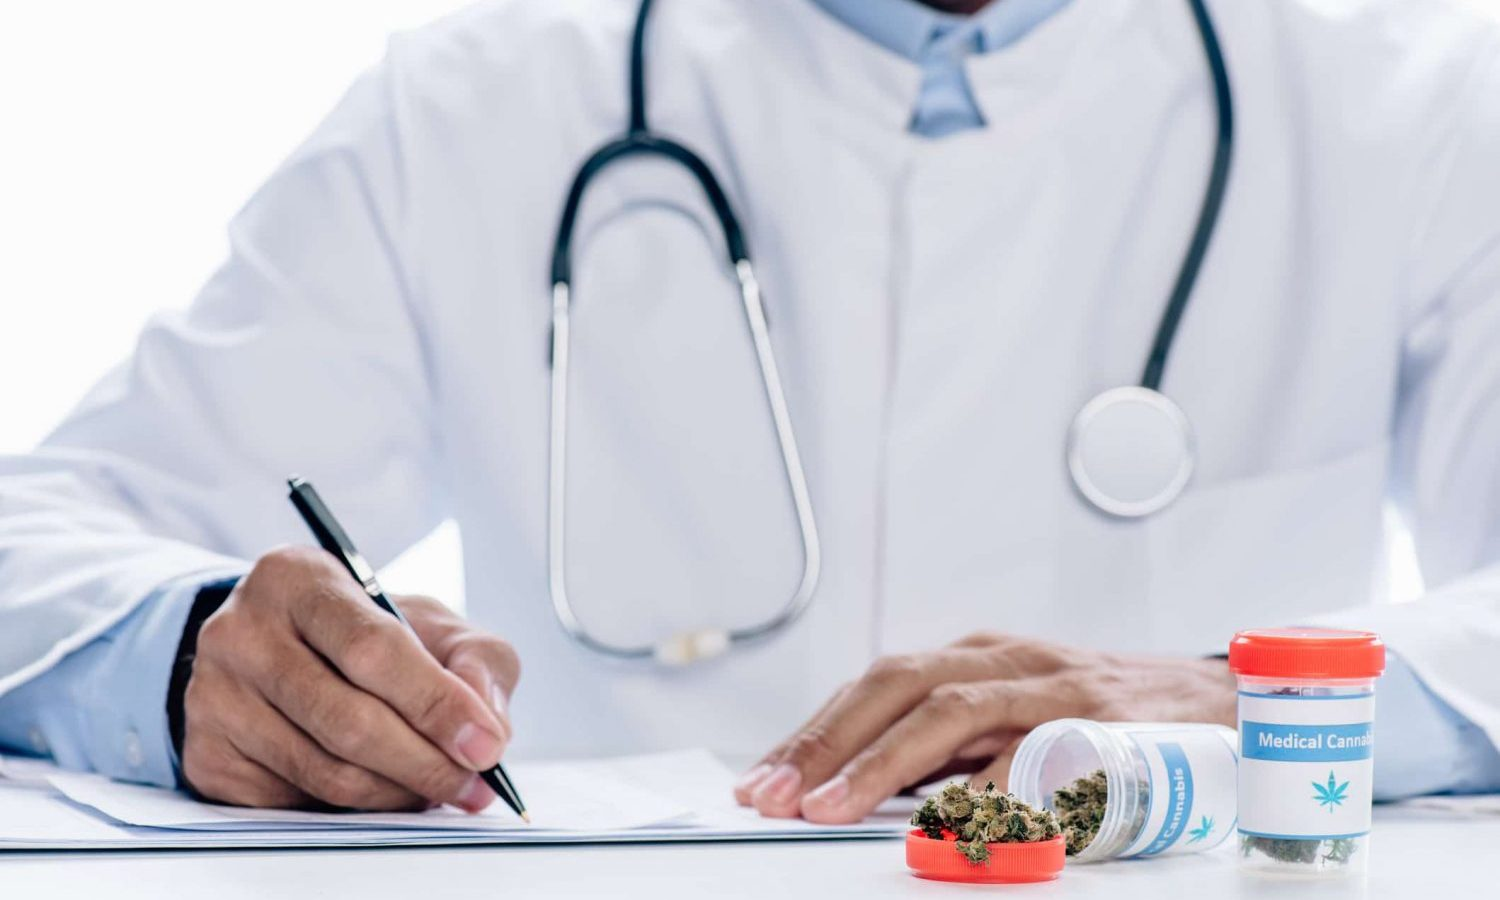 How Medical Marijuana Could Soon Be Prescribed By Doctors Nationwide